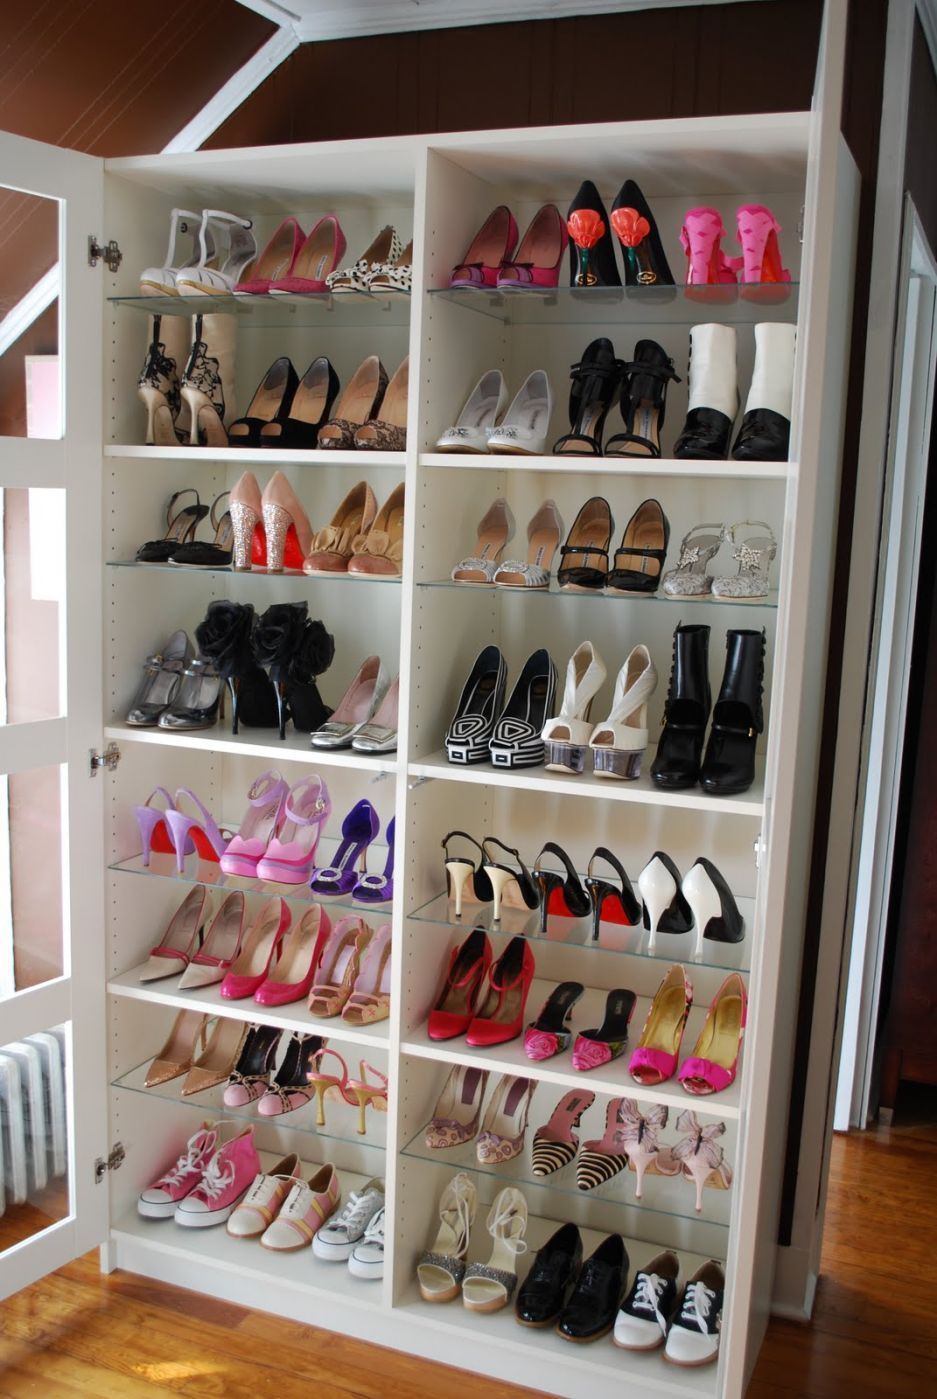 Furniture Shoe Rack On Walk In Closet Ideas With White Fiber Materials For Small Es Room